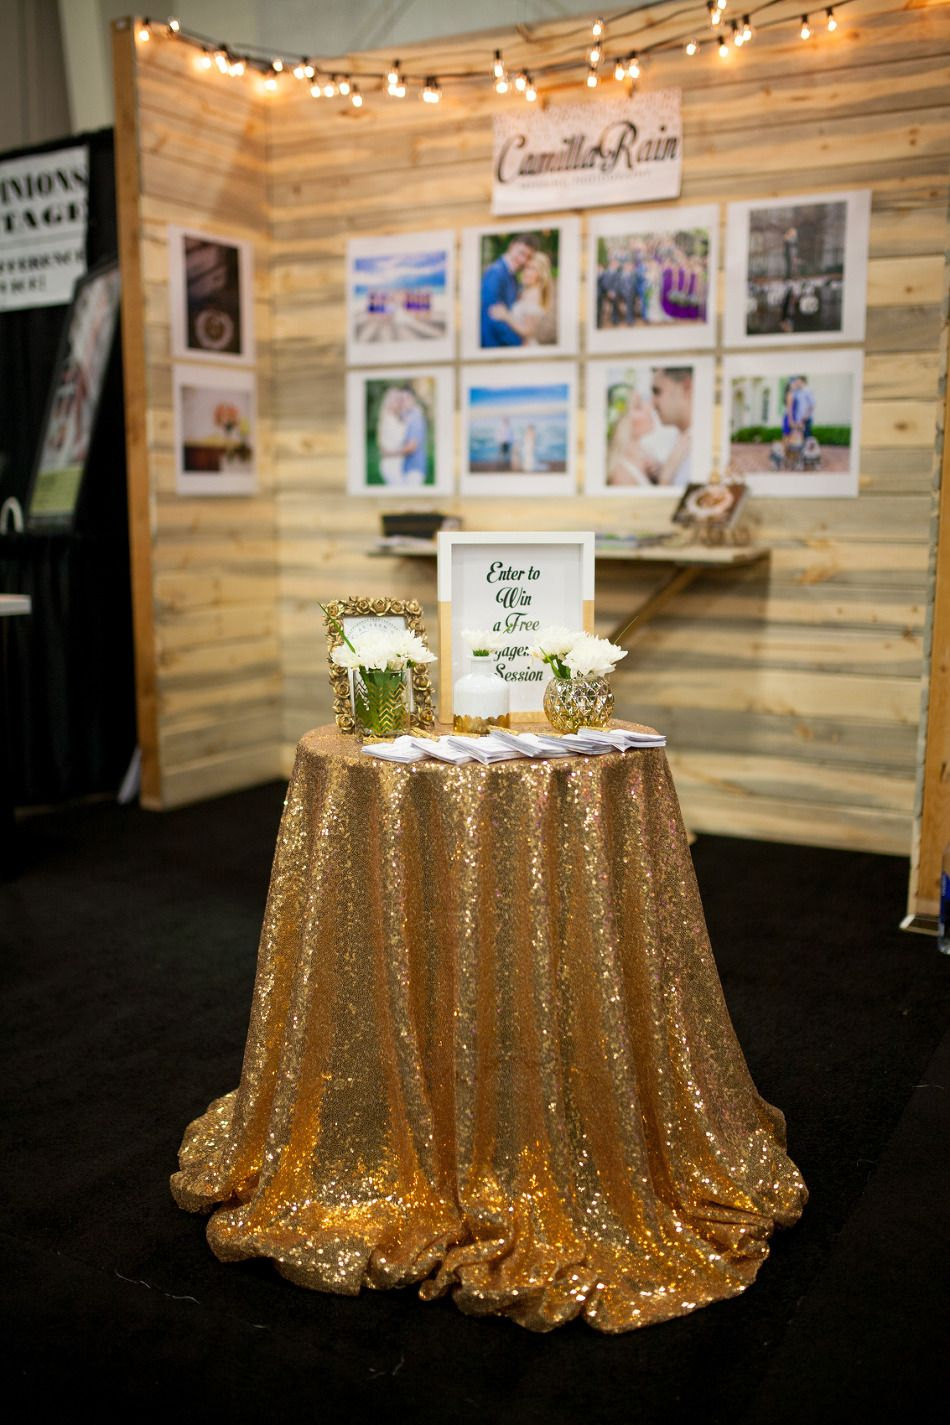 Wedding Photographer Booth Setup at a Bridal Show Bridal Show